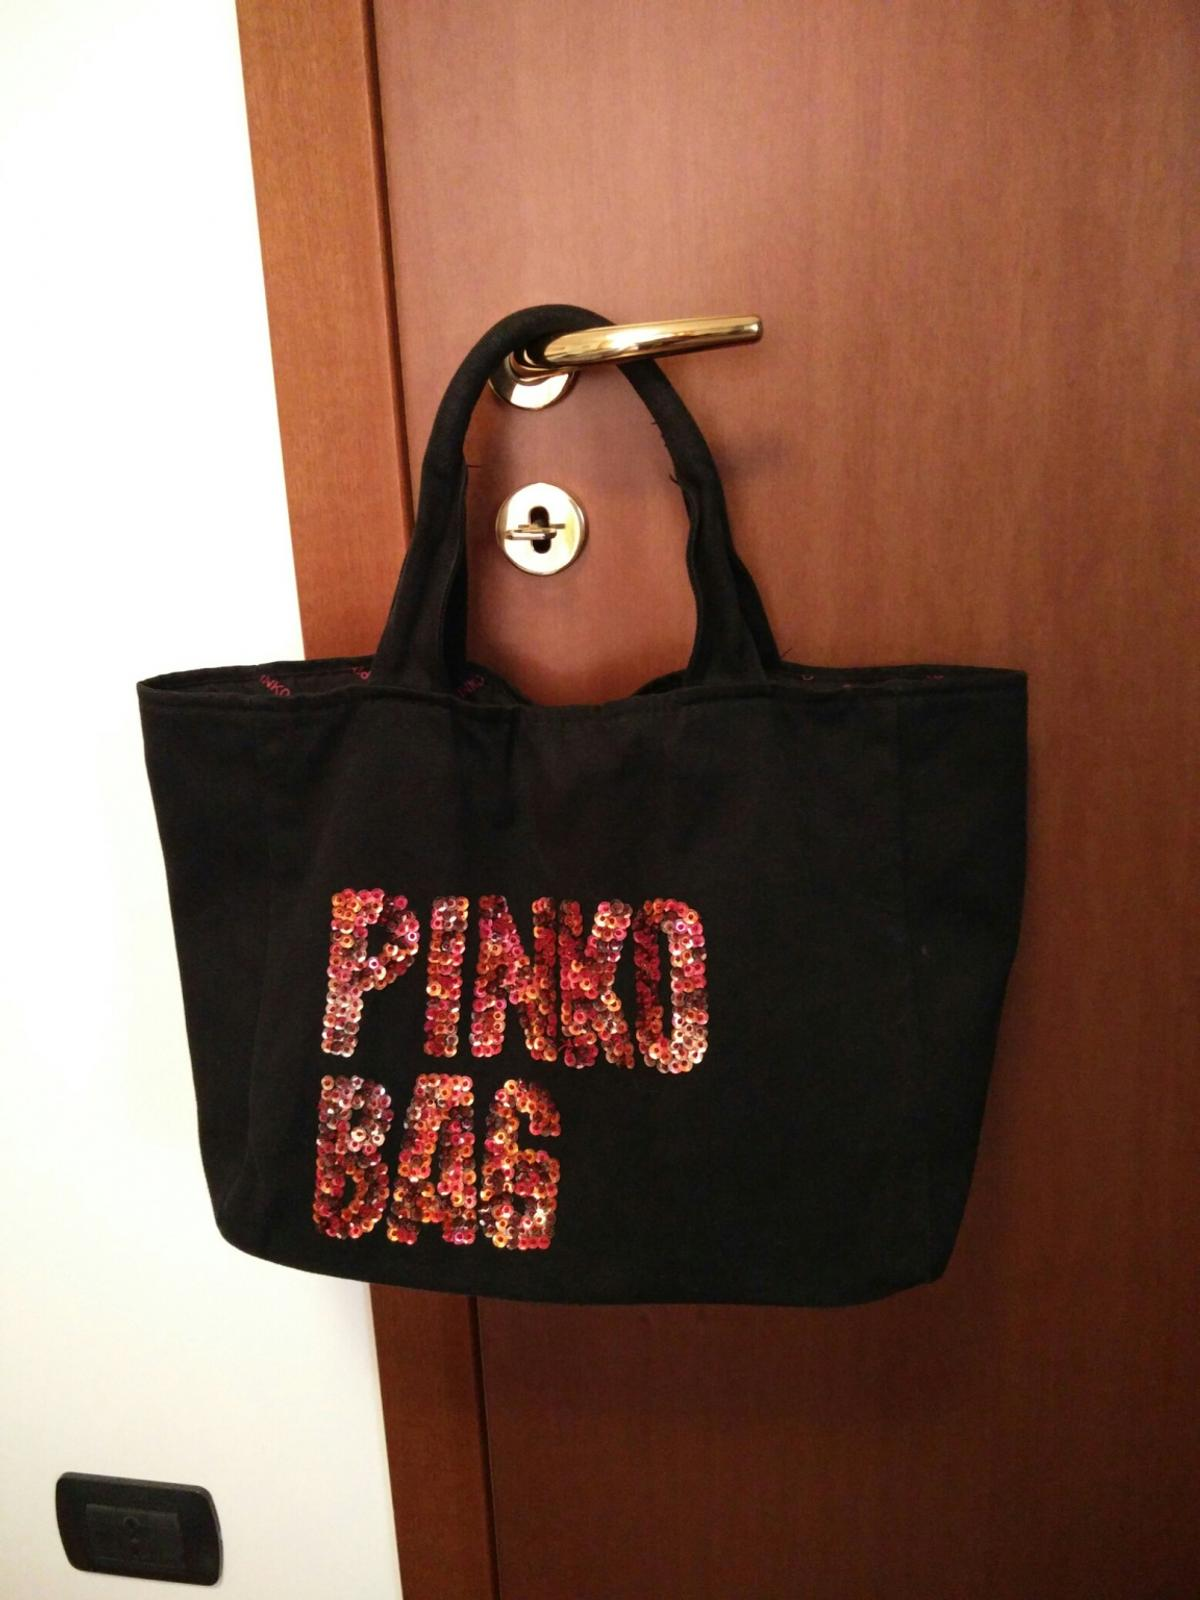 the latest d7628 a5f01 Borsa PINKO BAG in 22076 Cislago for €25.00 for sale - Shpock